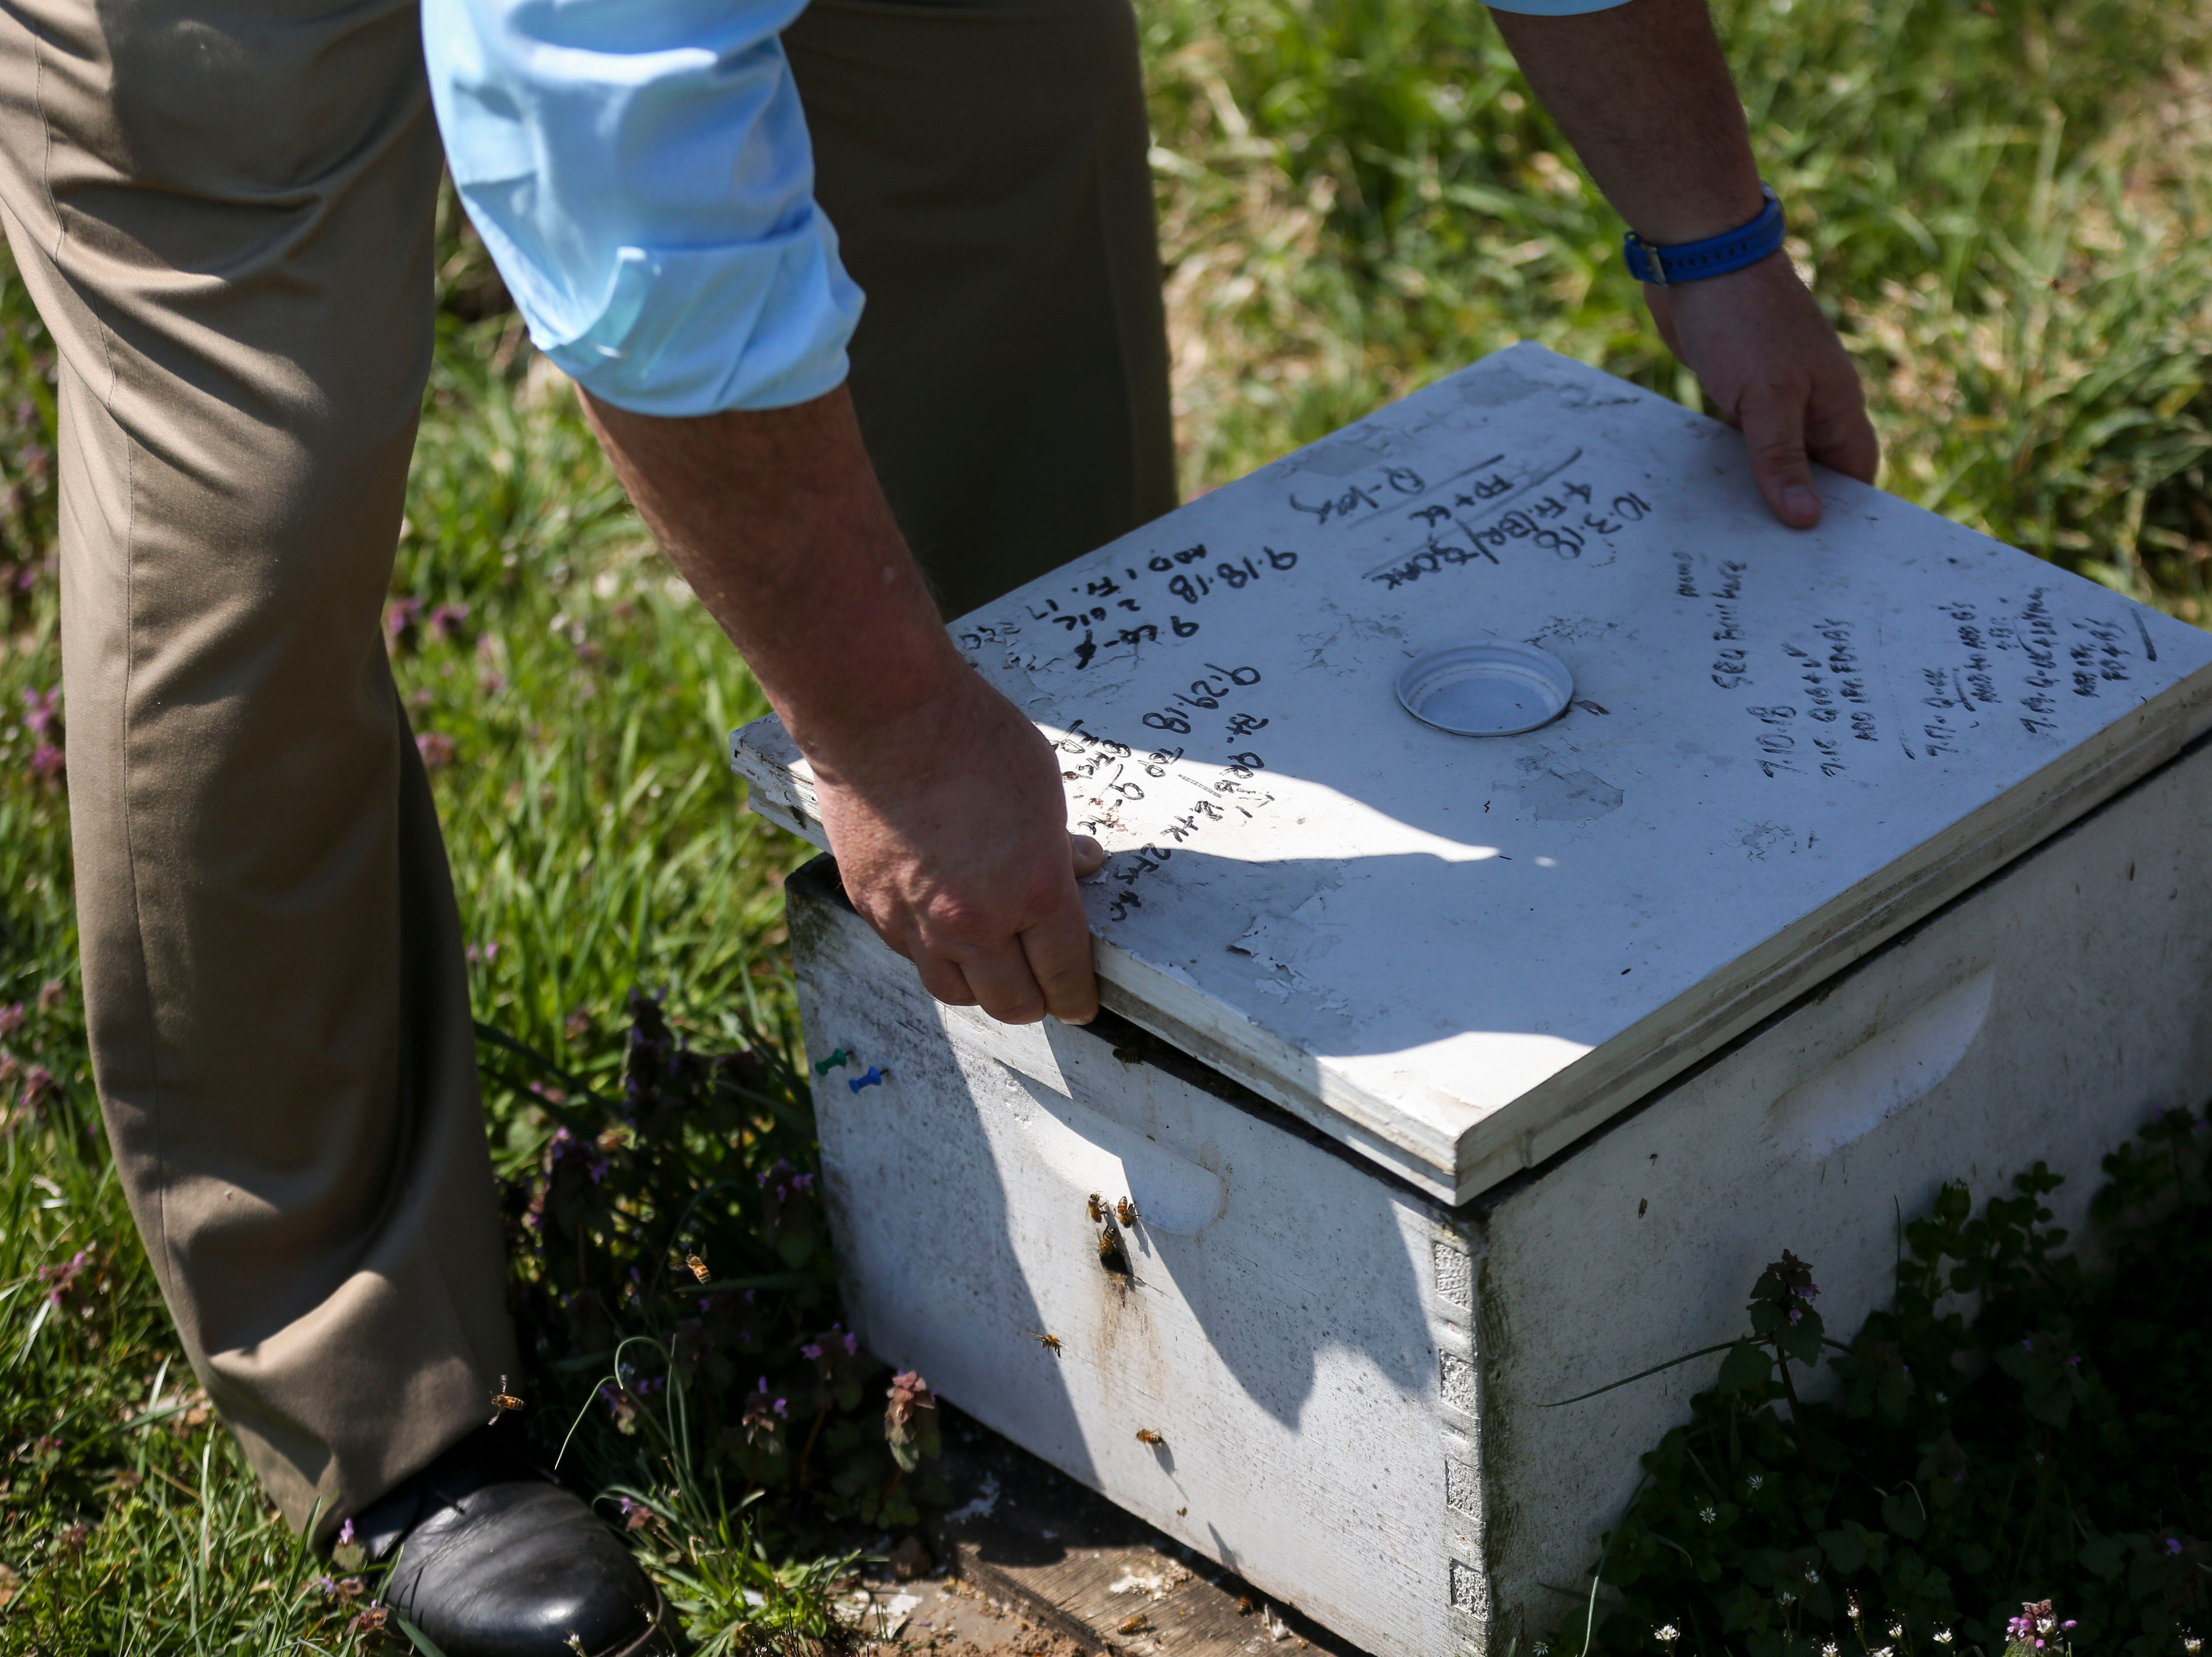 Richard Hosey lifts the lid of a beehive the in the Hosey Honey bee yard in Midway, Ky. on Wednesday, April 3, 2019. Hosey Honey is a small family run honey company, their Hosey's Queen's Triple Crown honey is used in the sweetener in the $1,000 Woodford Reserve Kentucky Derby mint julep.